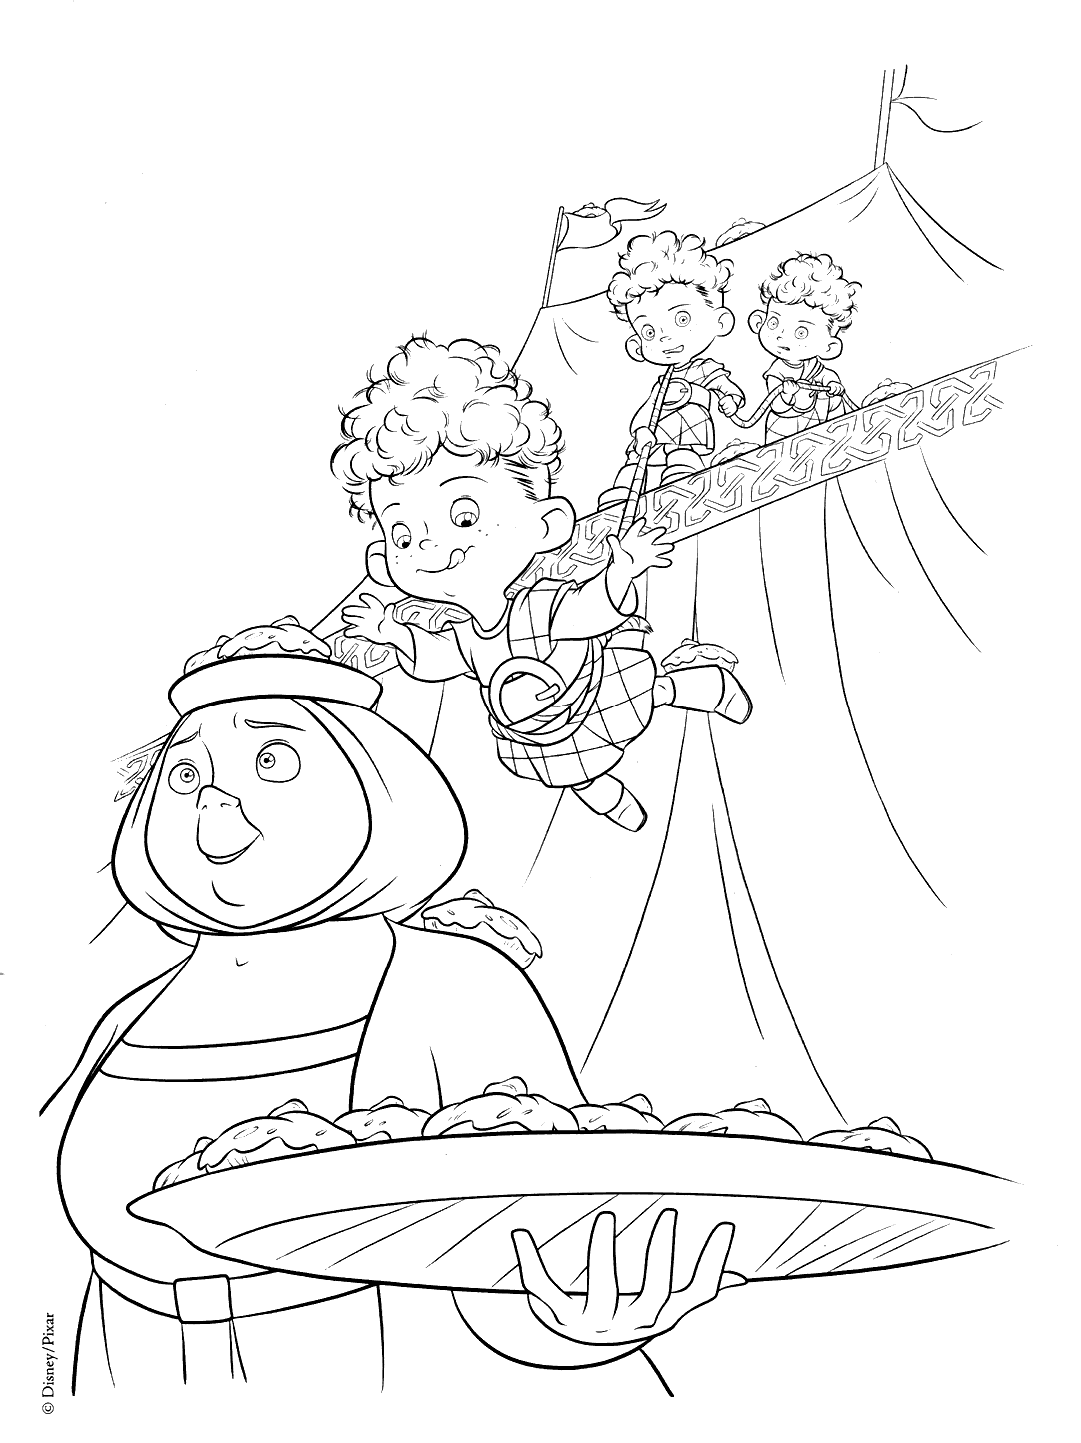 Funny free Brave coloring page to print and color